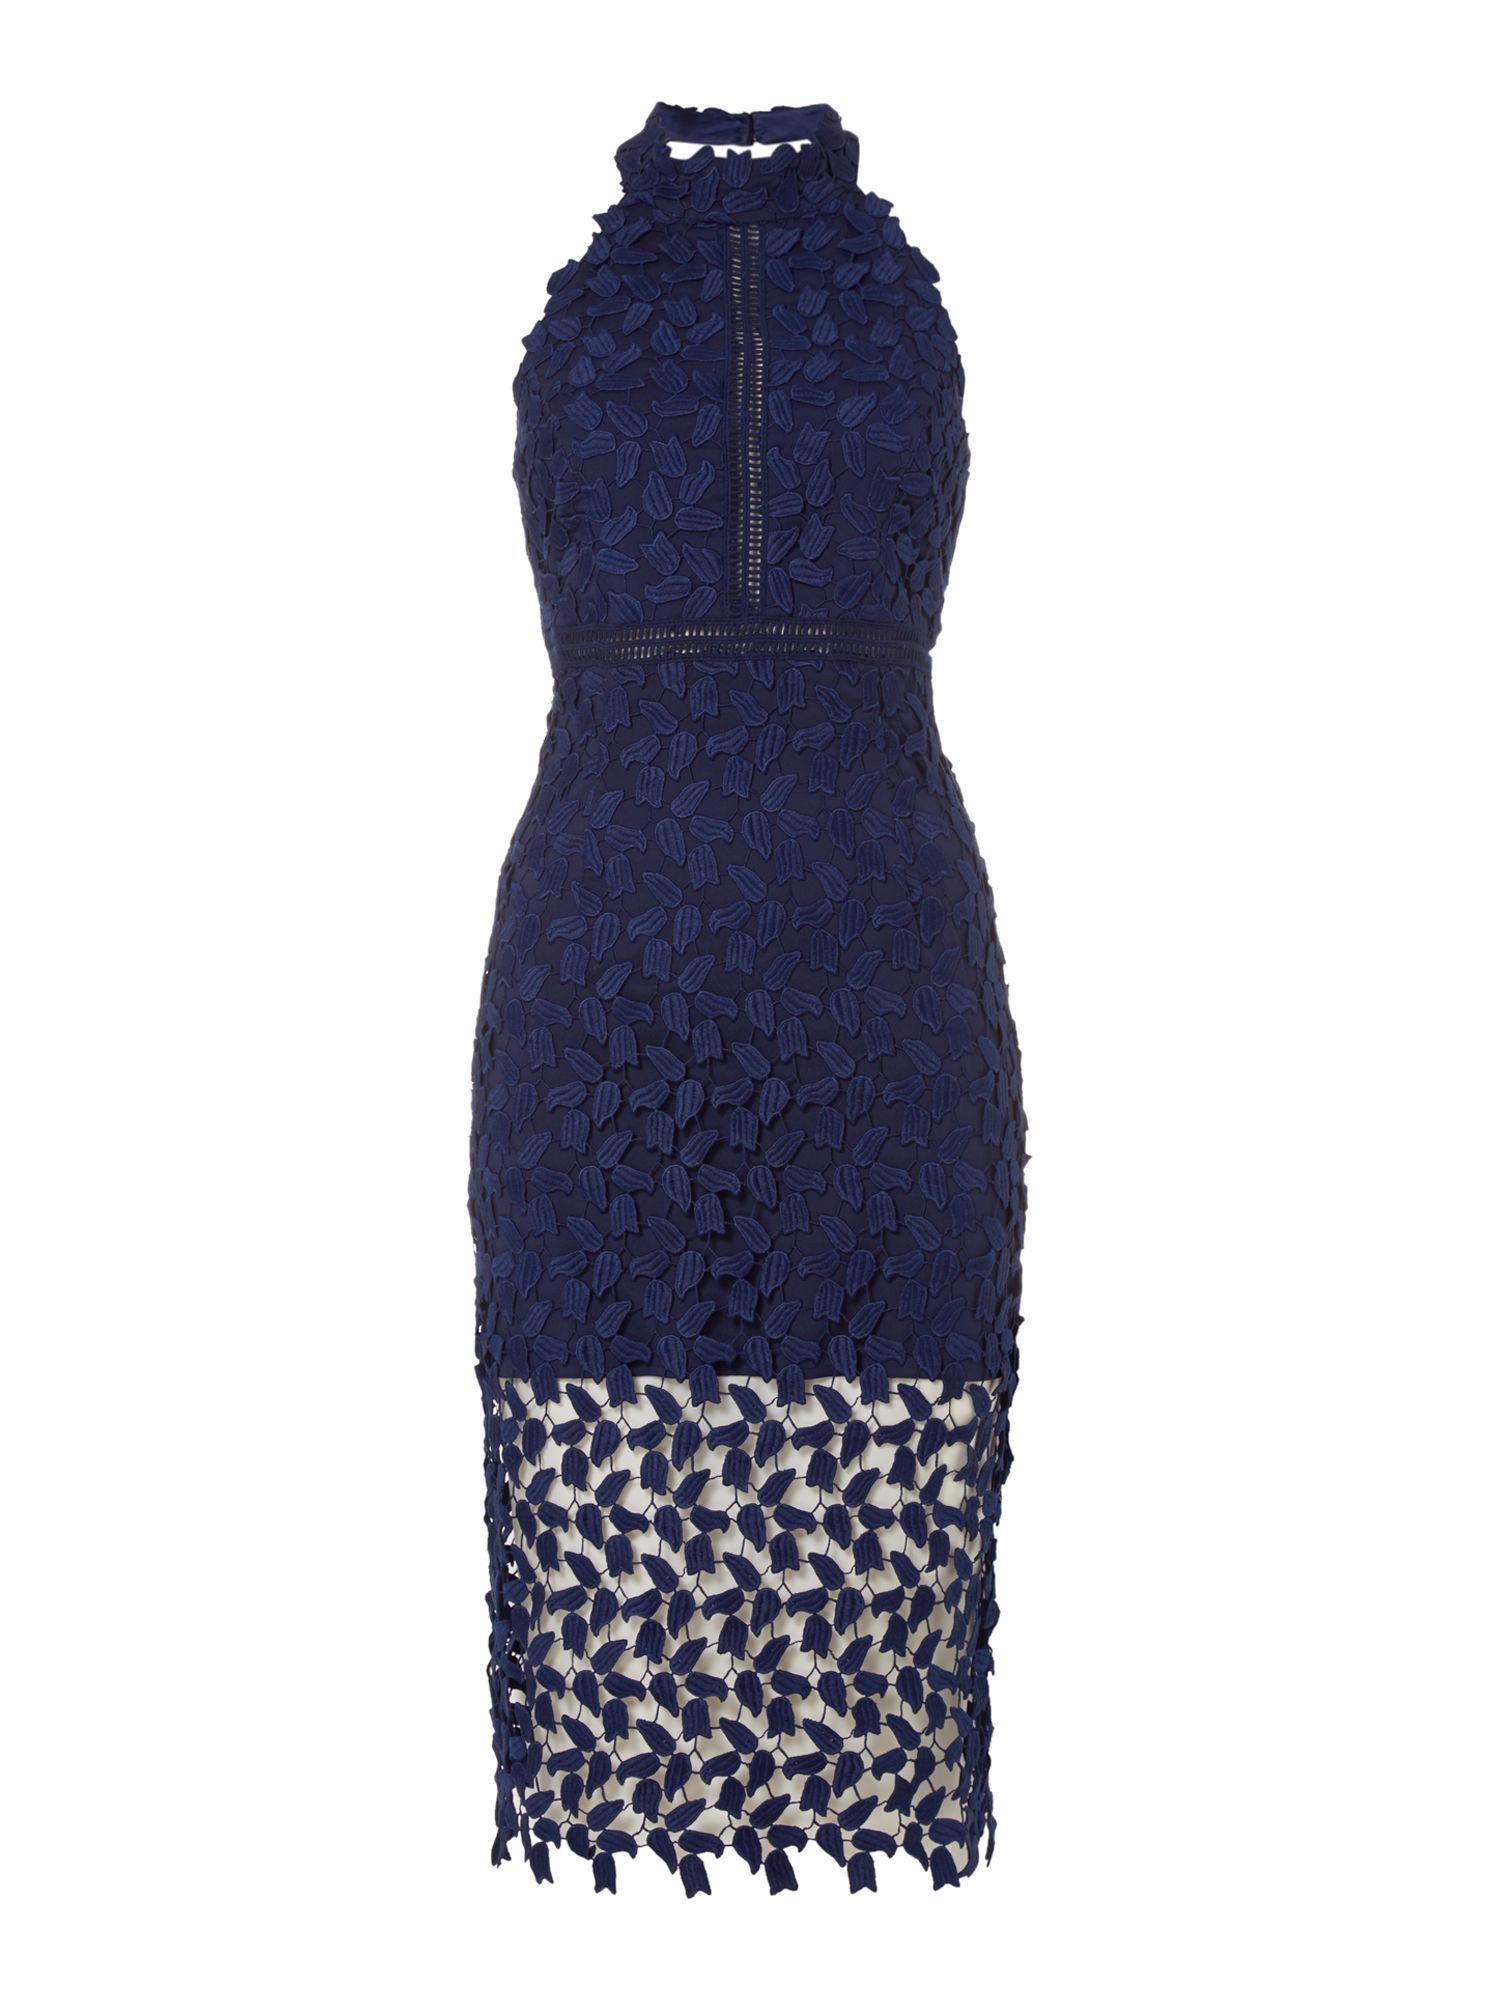 Bardot Sleeveless Halter Neck Embroidred Gemma Dress, Blue